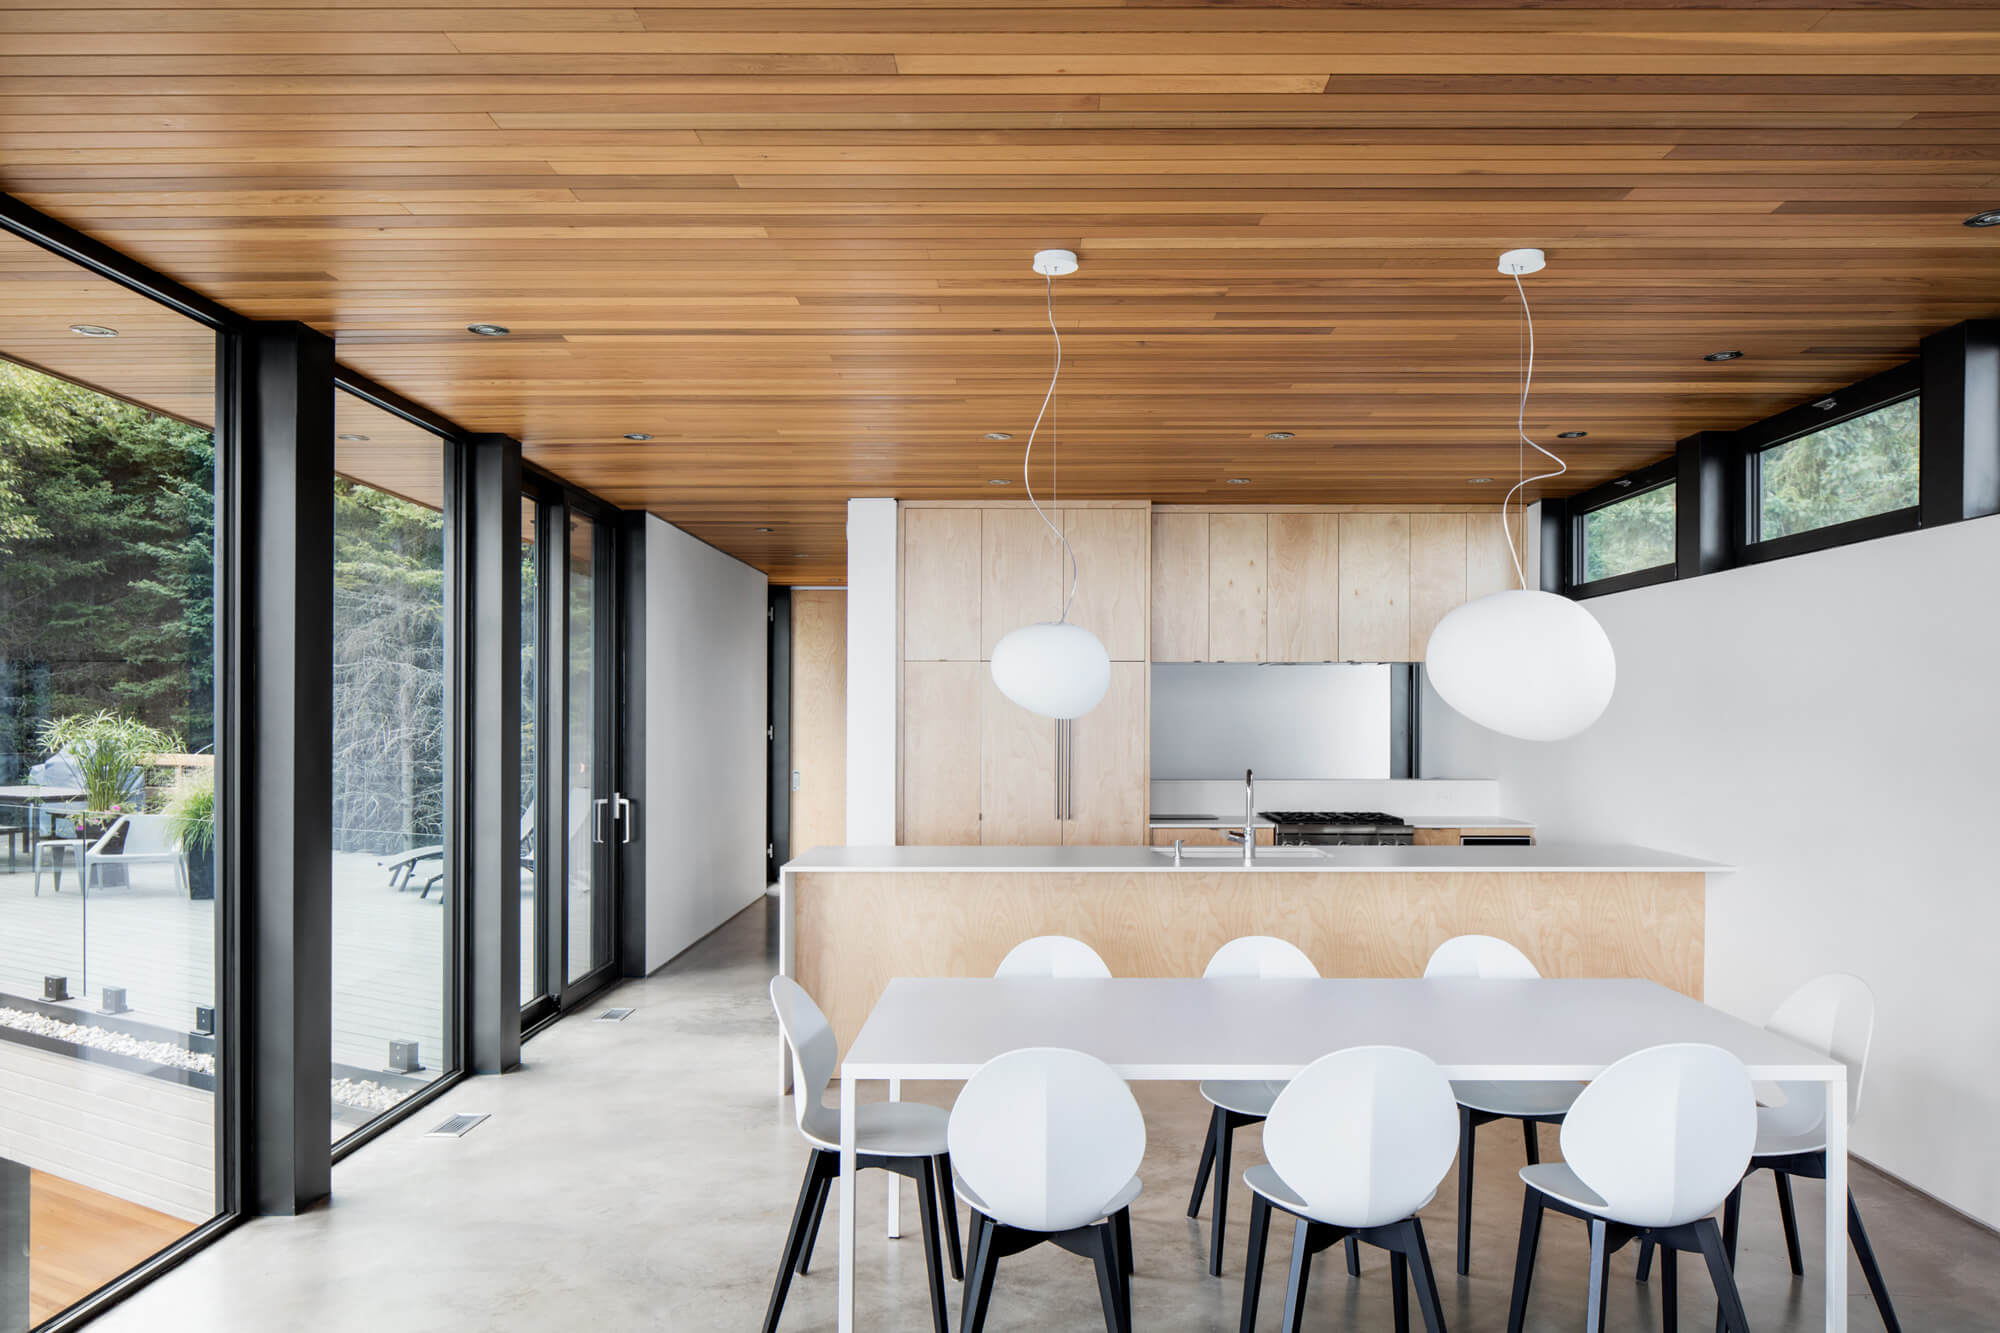 370_BOURGEOIS-LECHASSEUR-ARCHITECTES_RESIDENCE-ALTAIR_02